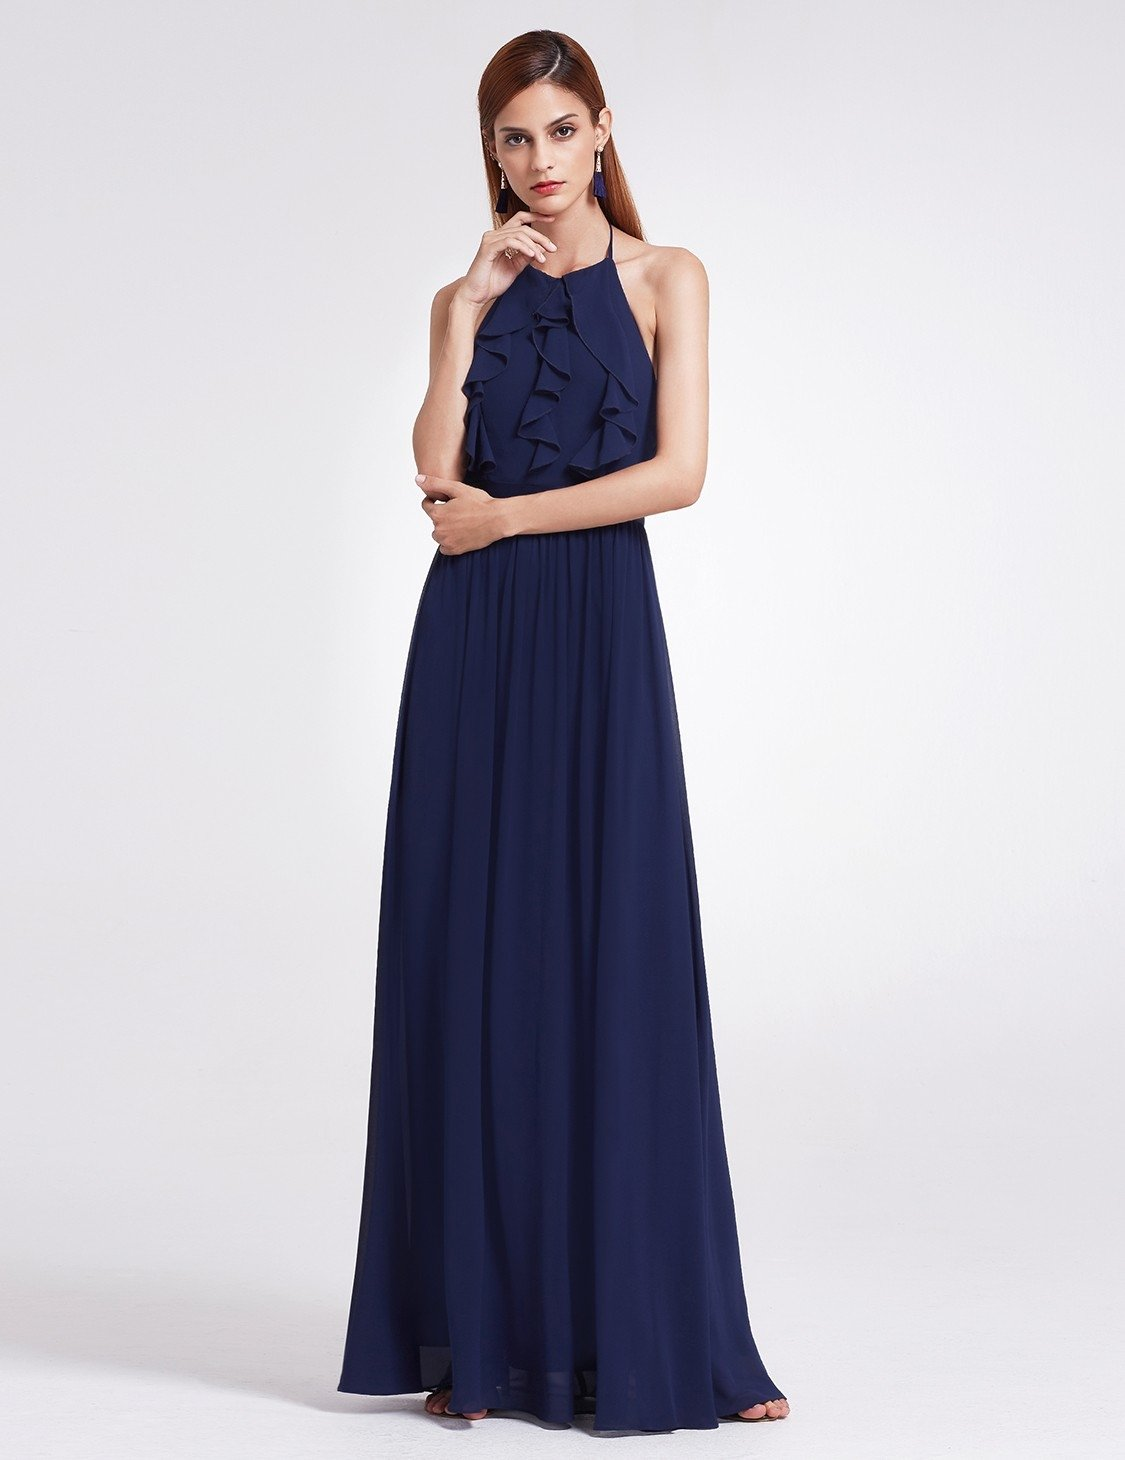 Navy Blue Sleeveless Halter Neck Bridesmaid Dress